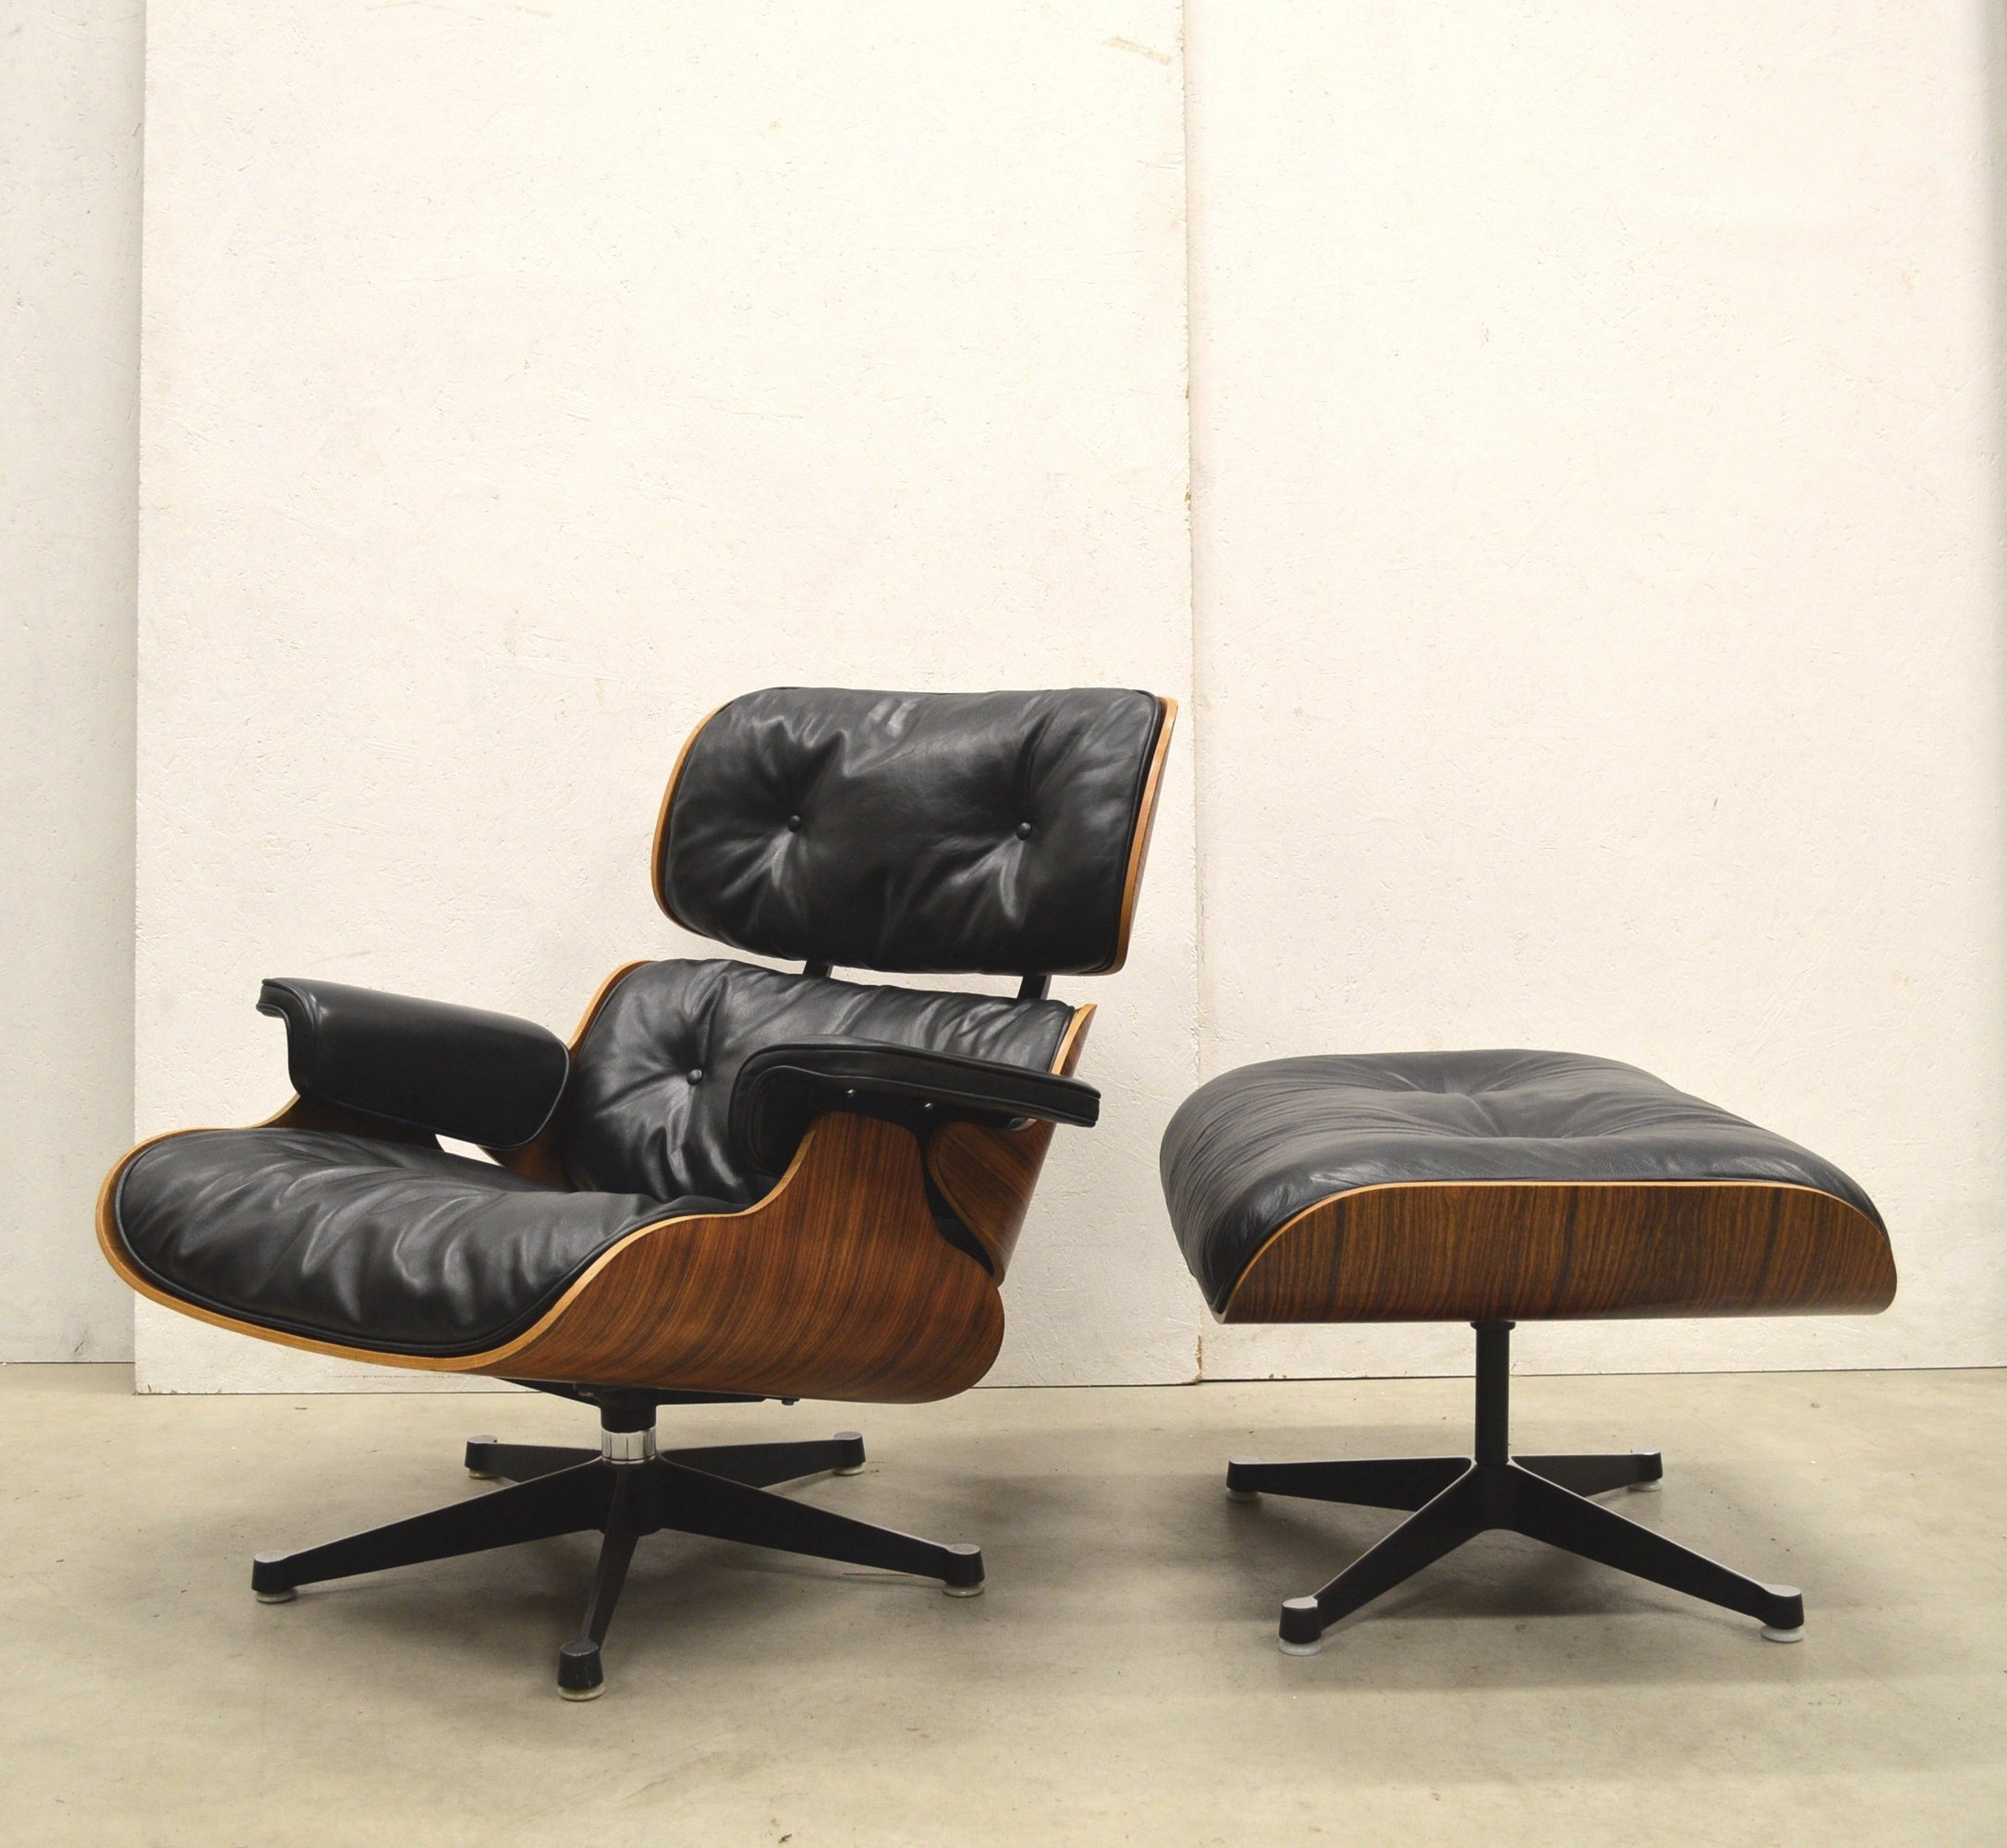 Charles Eames Lounge Chair Very Early Contura Herman Miller Lounge Chair & Ottoman By Charles Eames, 1960s | #150303